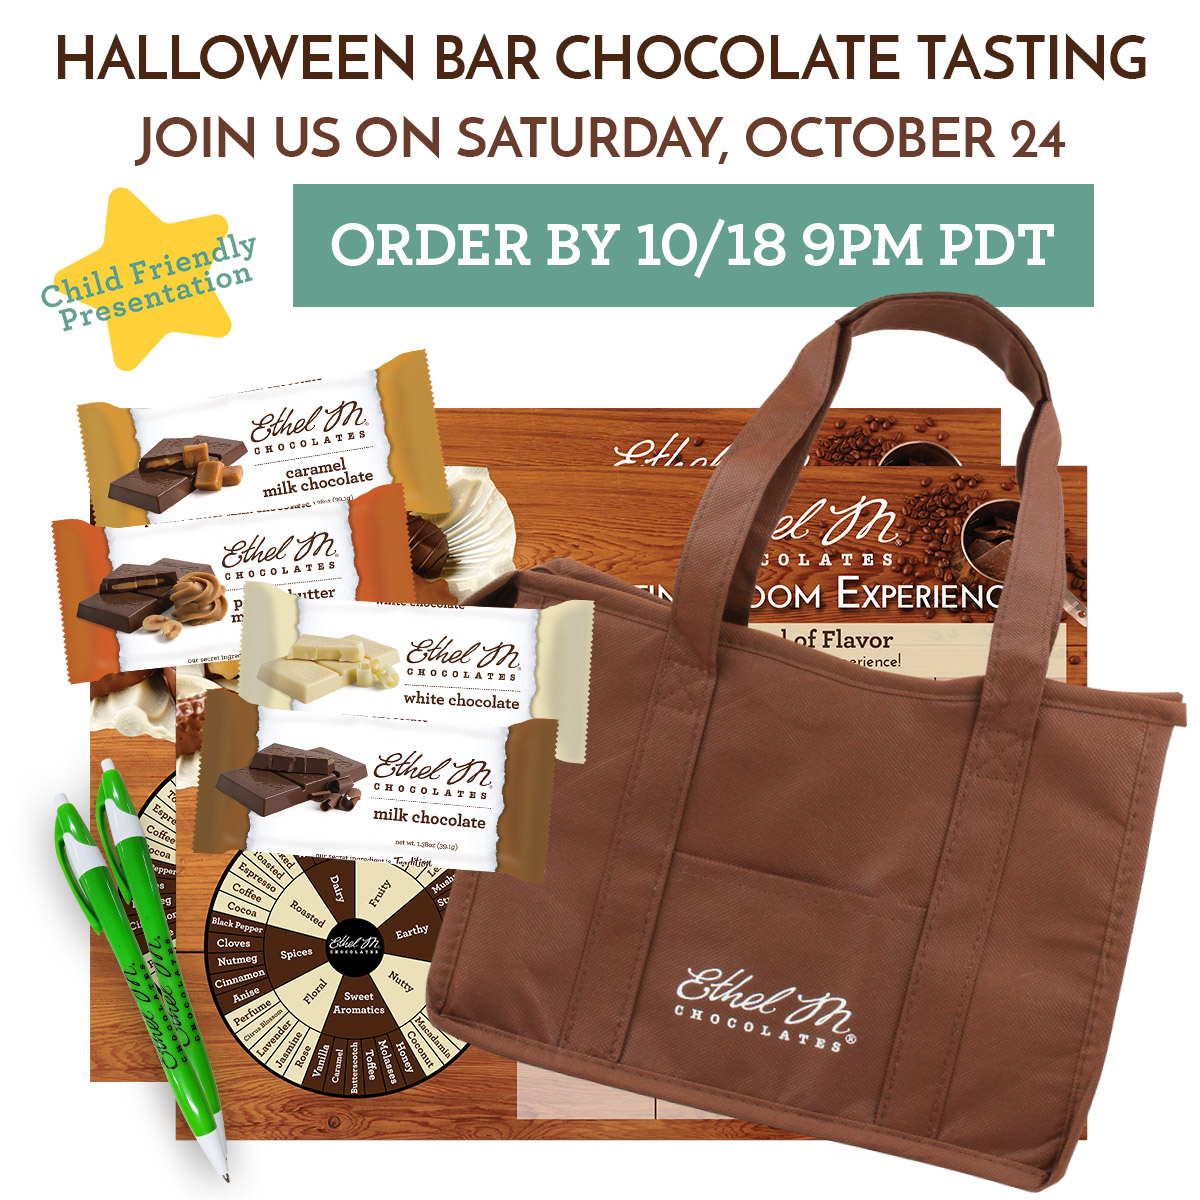 Halloween Chocolate Bar Tasting on Sat 10/24 @ 5pm